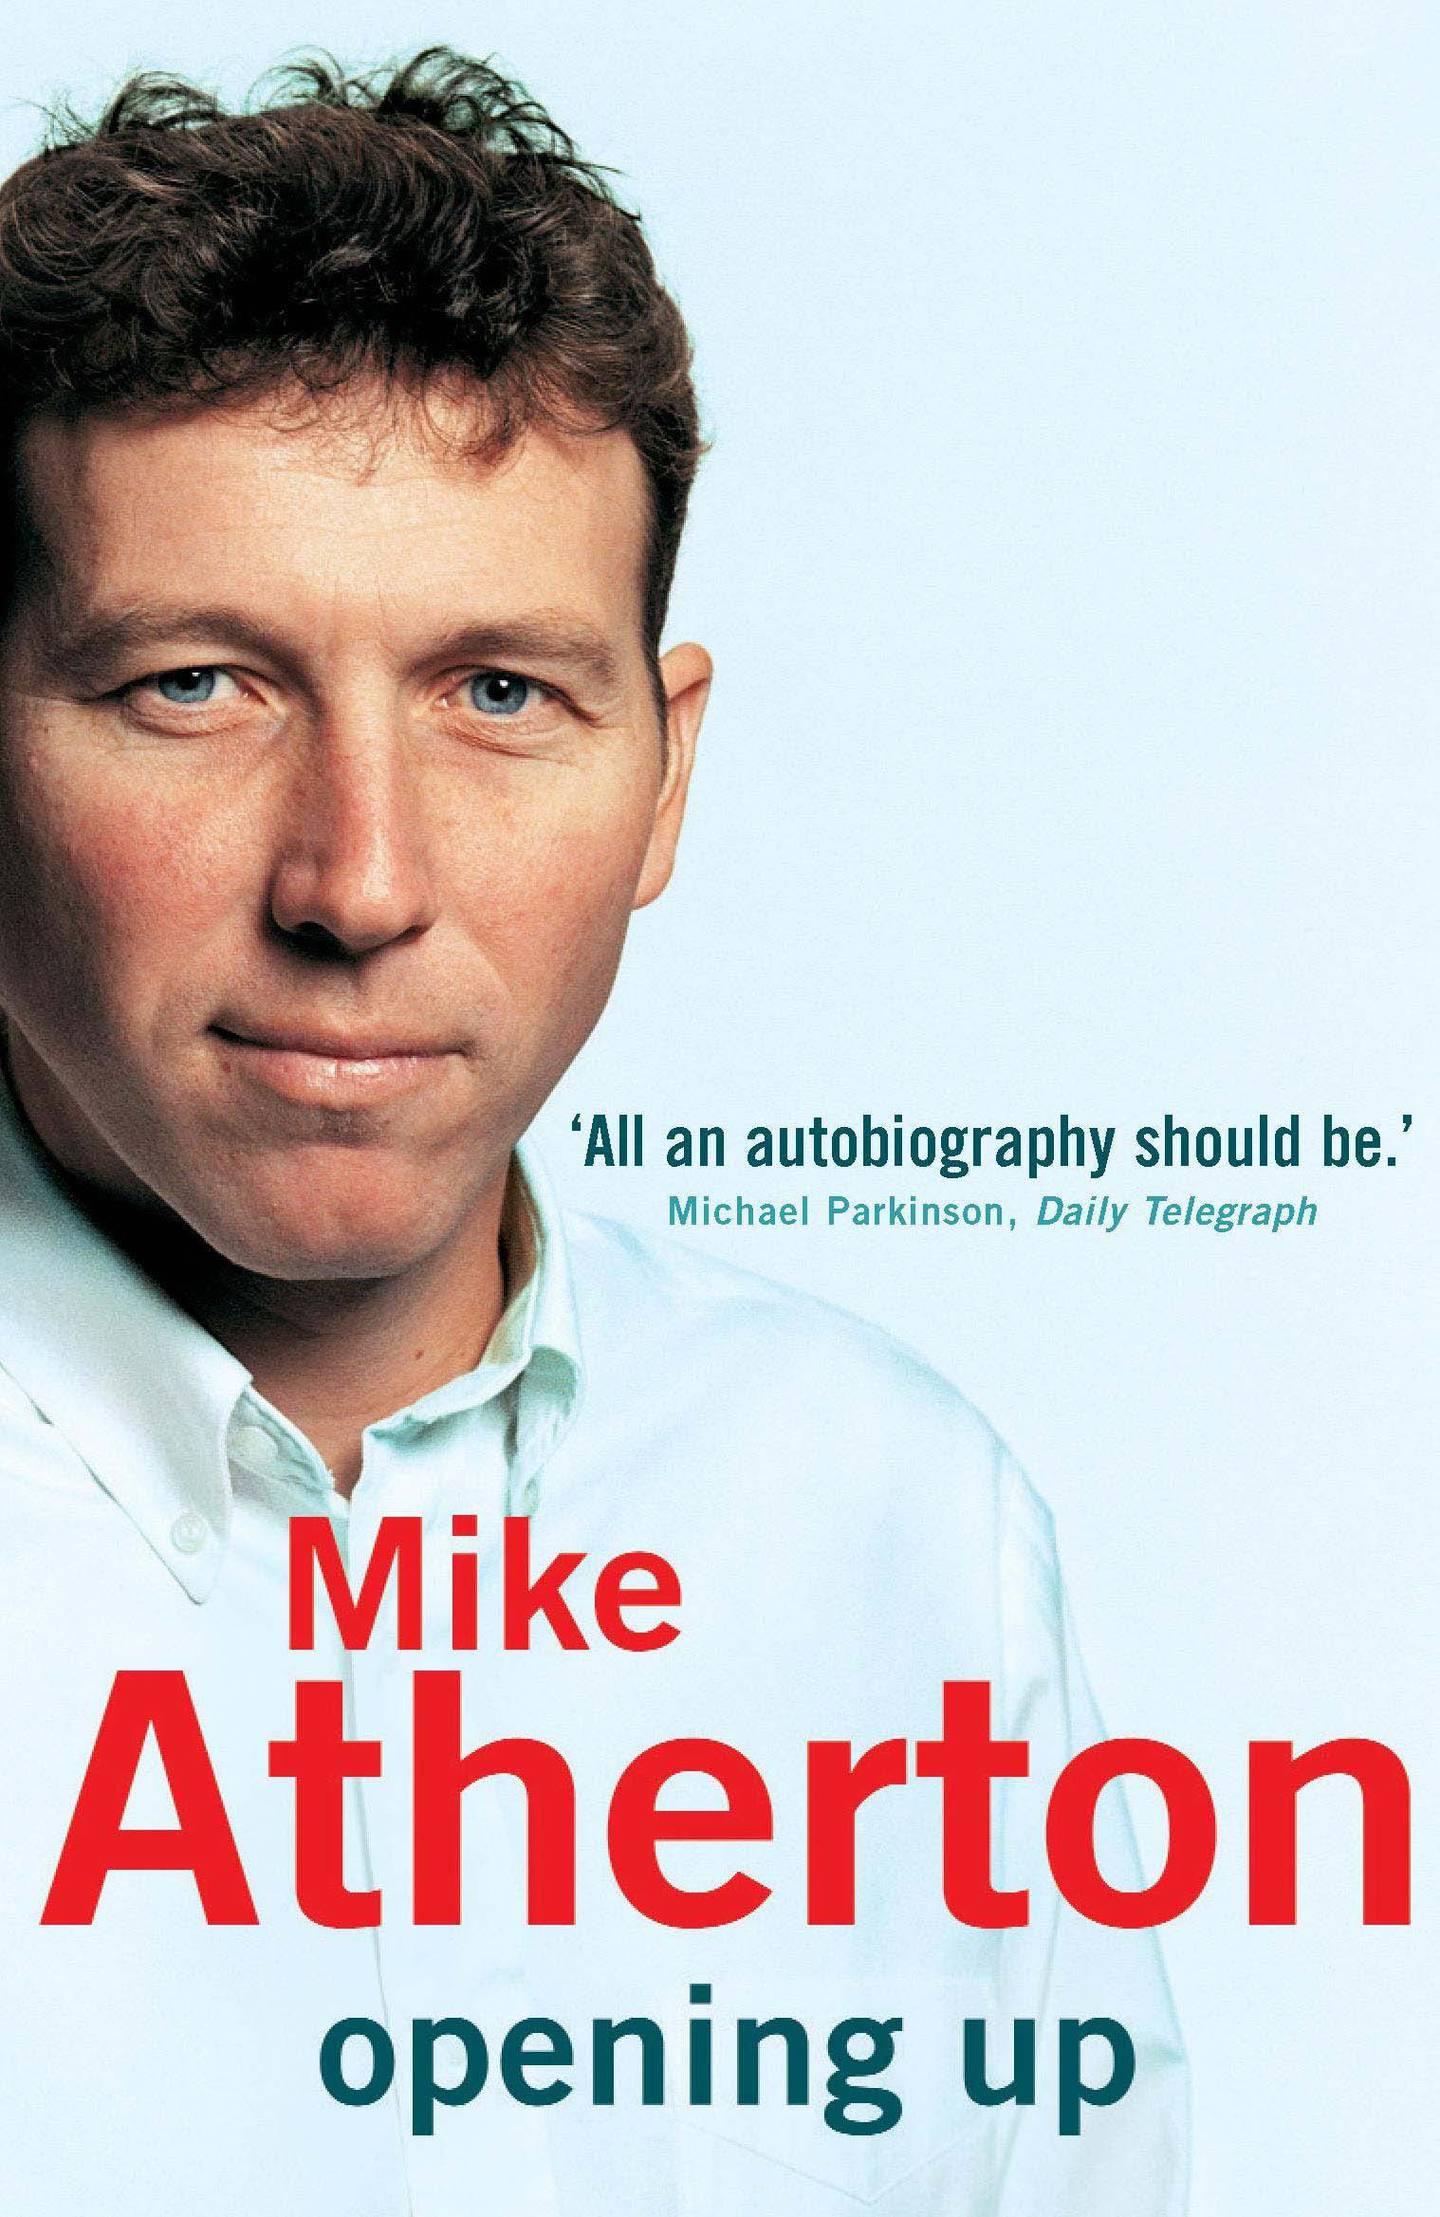 Opening Up - My Autobiography by Mike Atherton published by Hodder Paperbacks. Courtesy Hachette